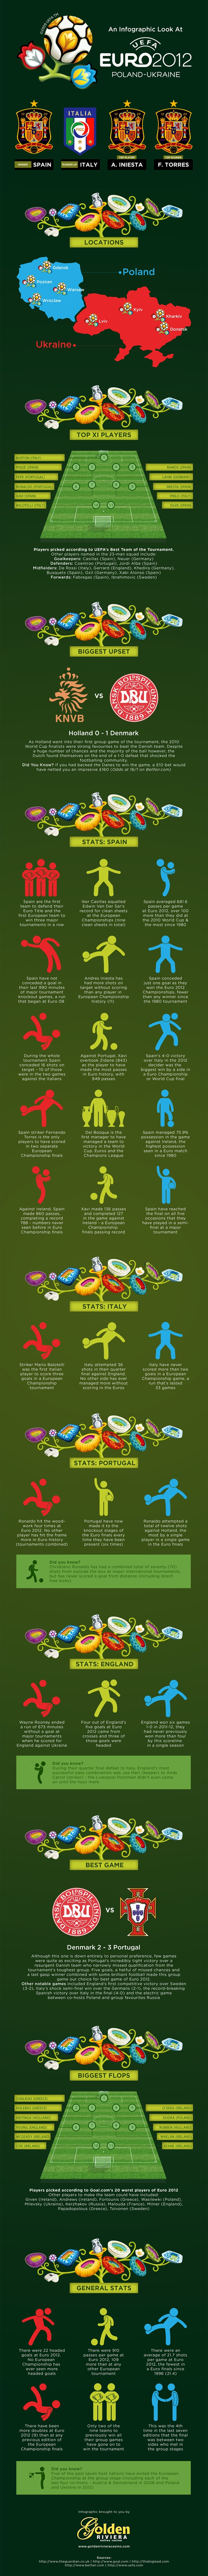 An infographic look at Euro 2012